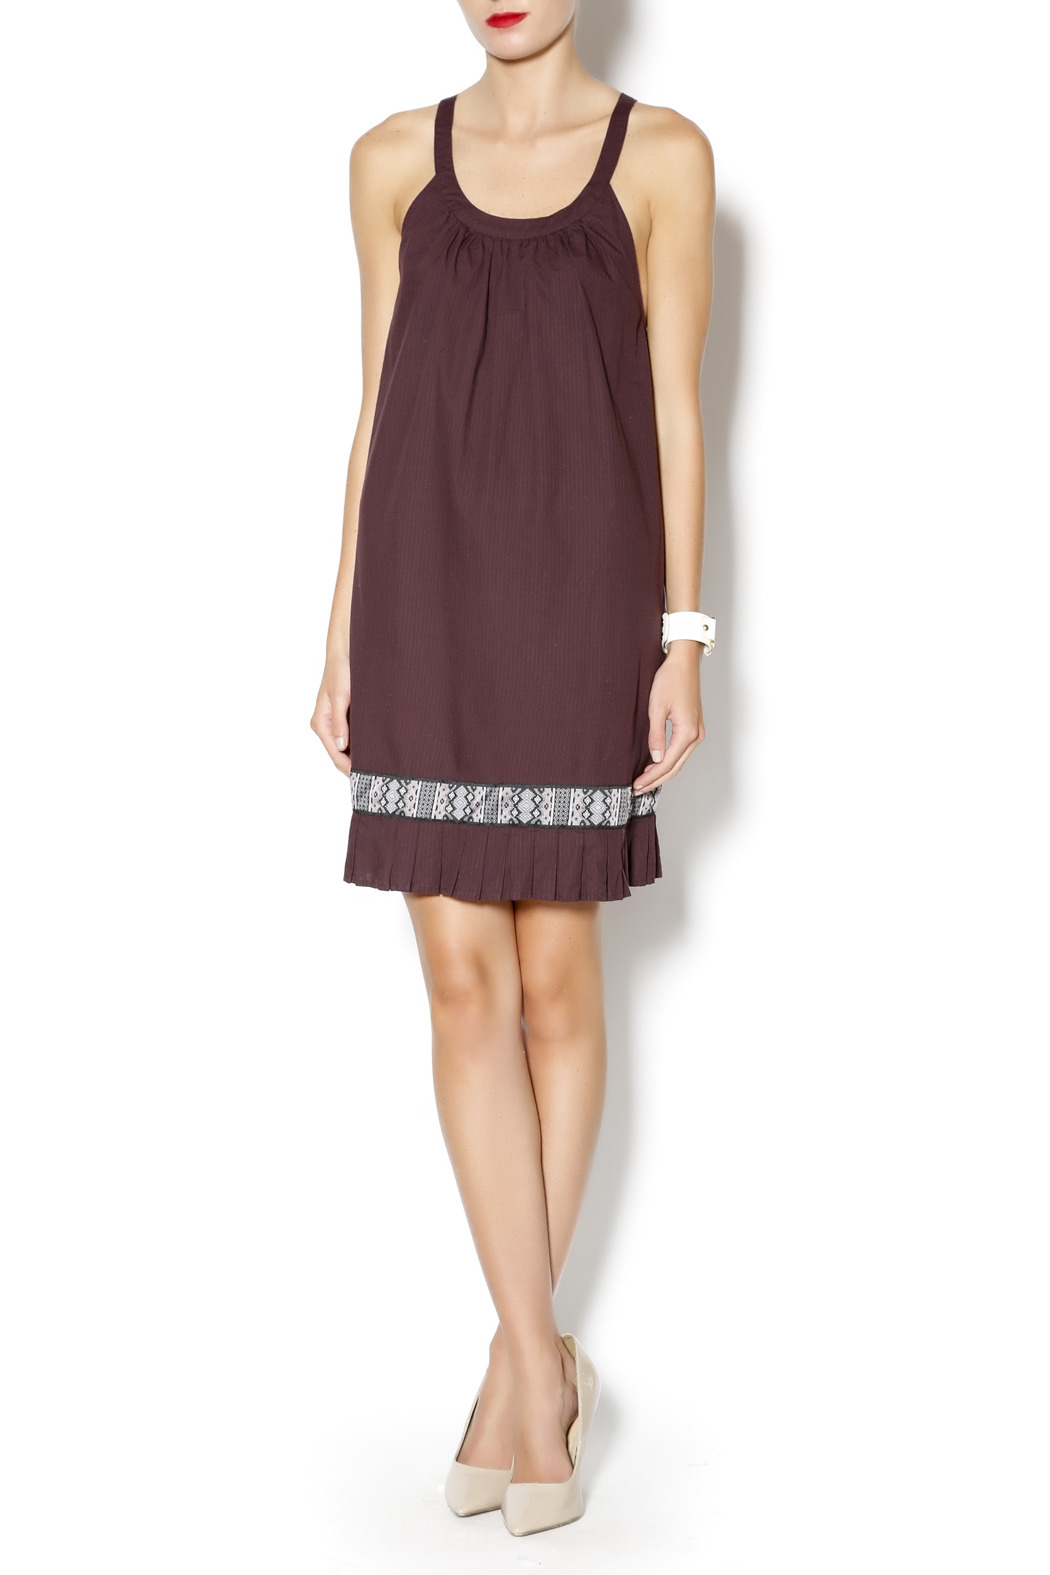 Free People Native Sun Shift Dress - Front Full Image